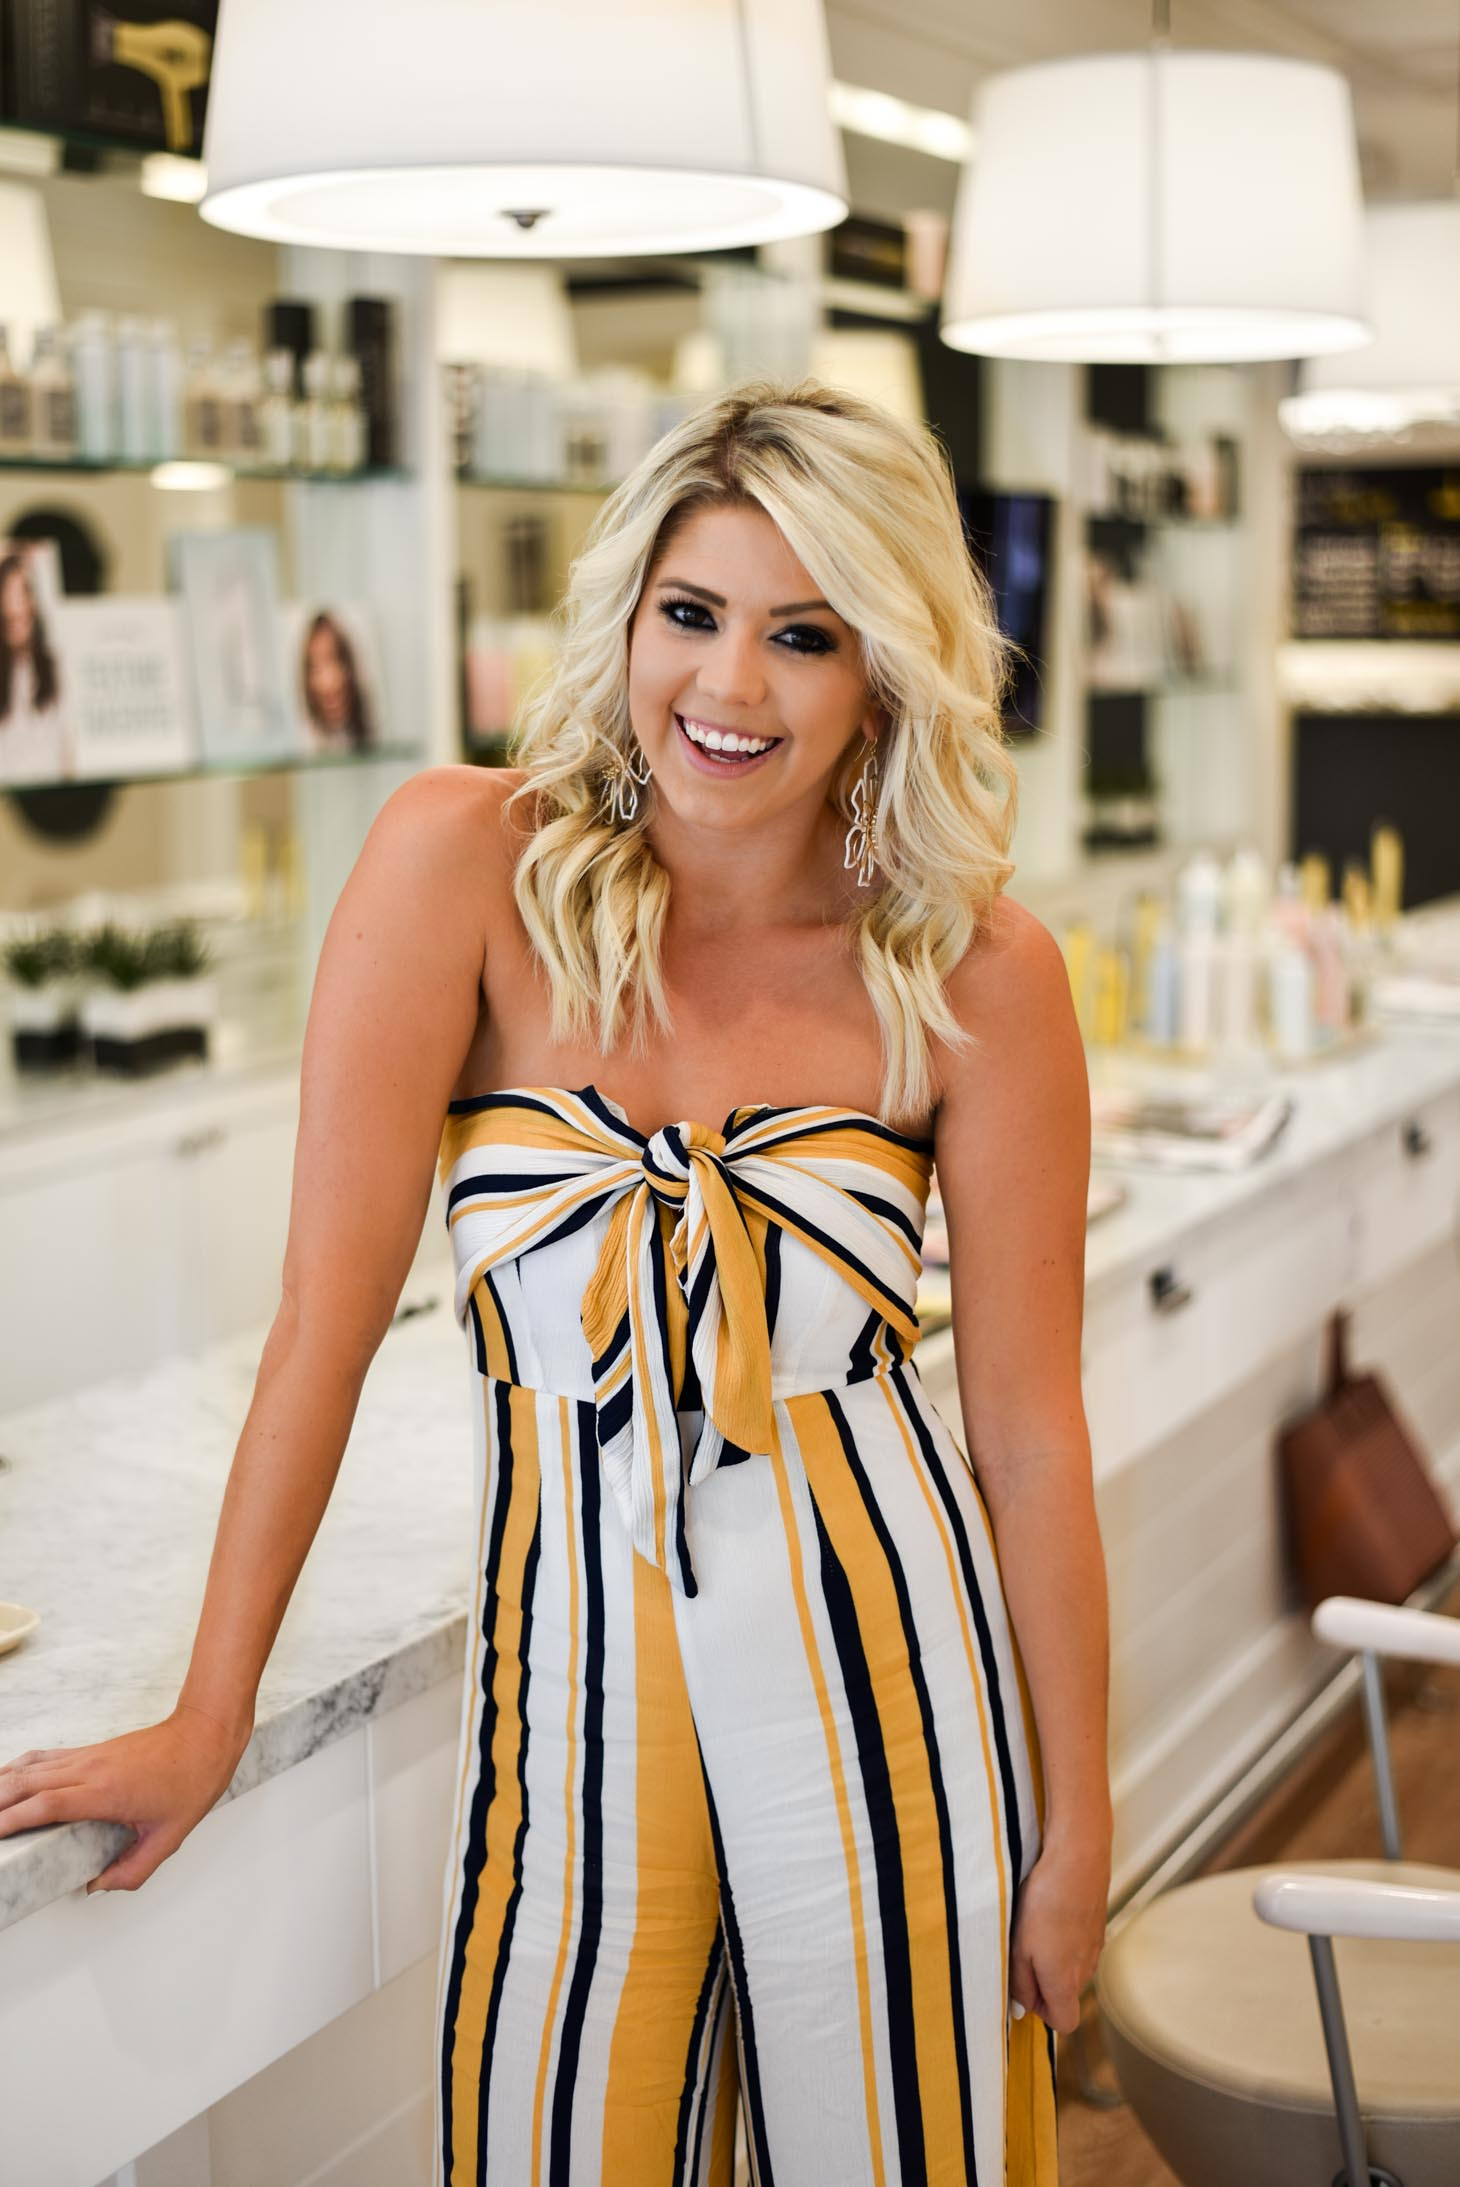 Erin Elizabeth of Wink and a Twirl and Melissa of Always Meliss share their experience at the DryBar in Scottsdale, Arizona